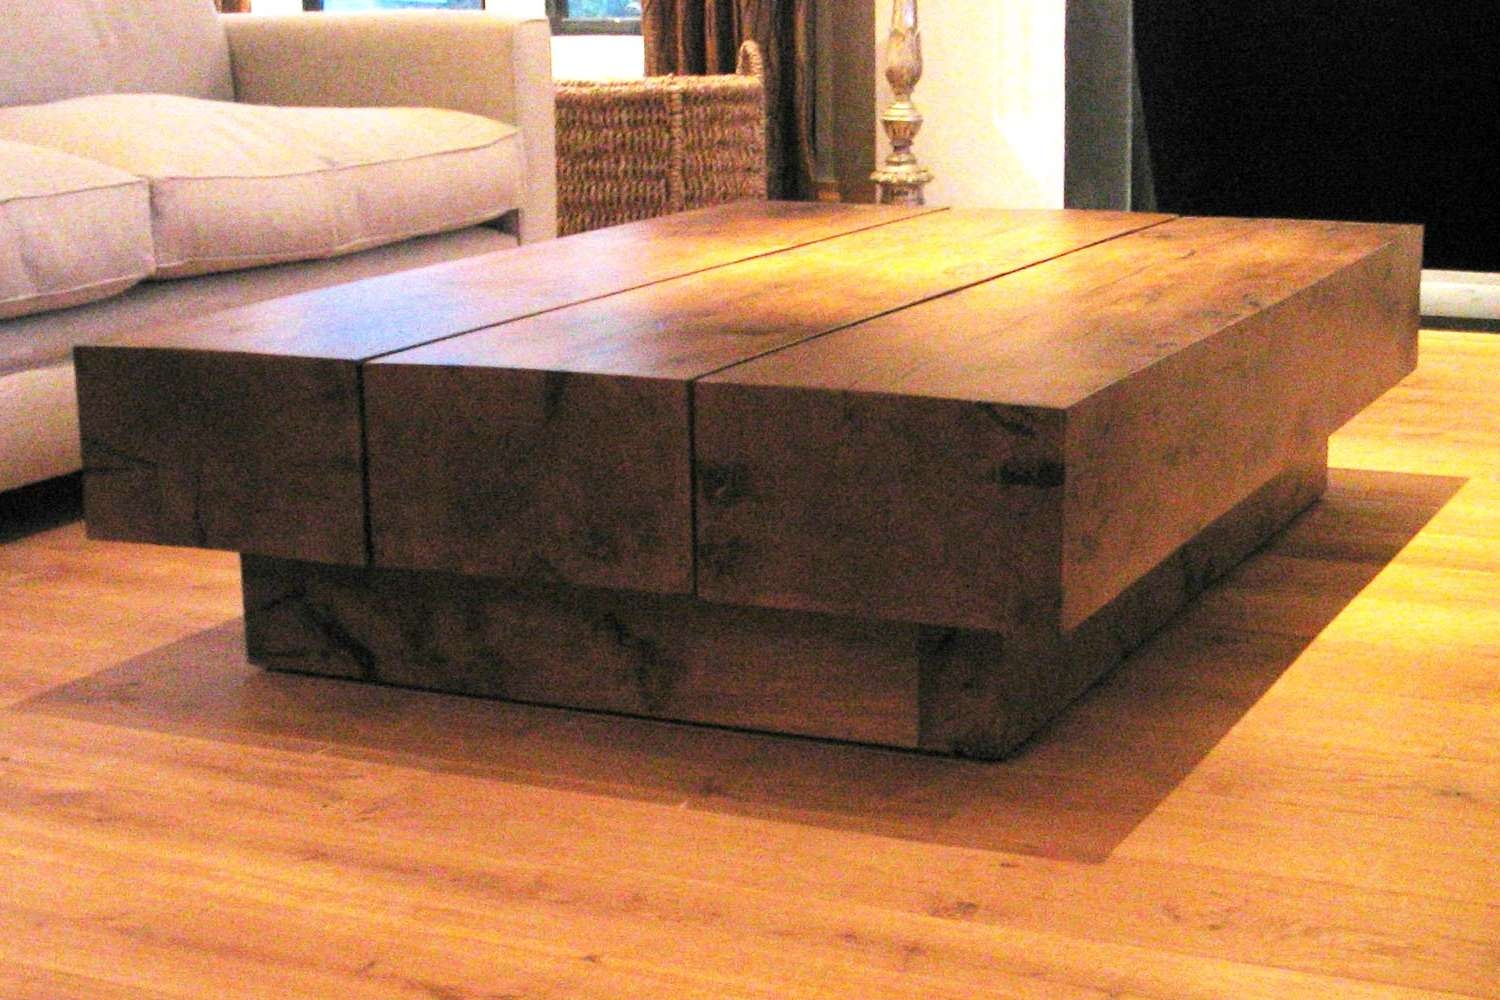 Ross Langley Bespoke Furniture And Joinery With Most Recent Bespoke Coffee Tables (View 12 of 20)